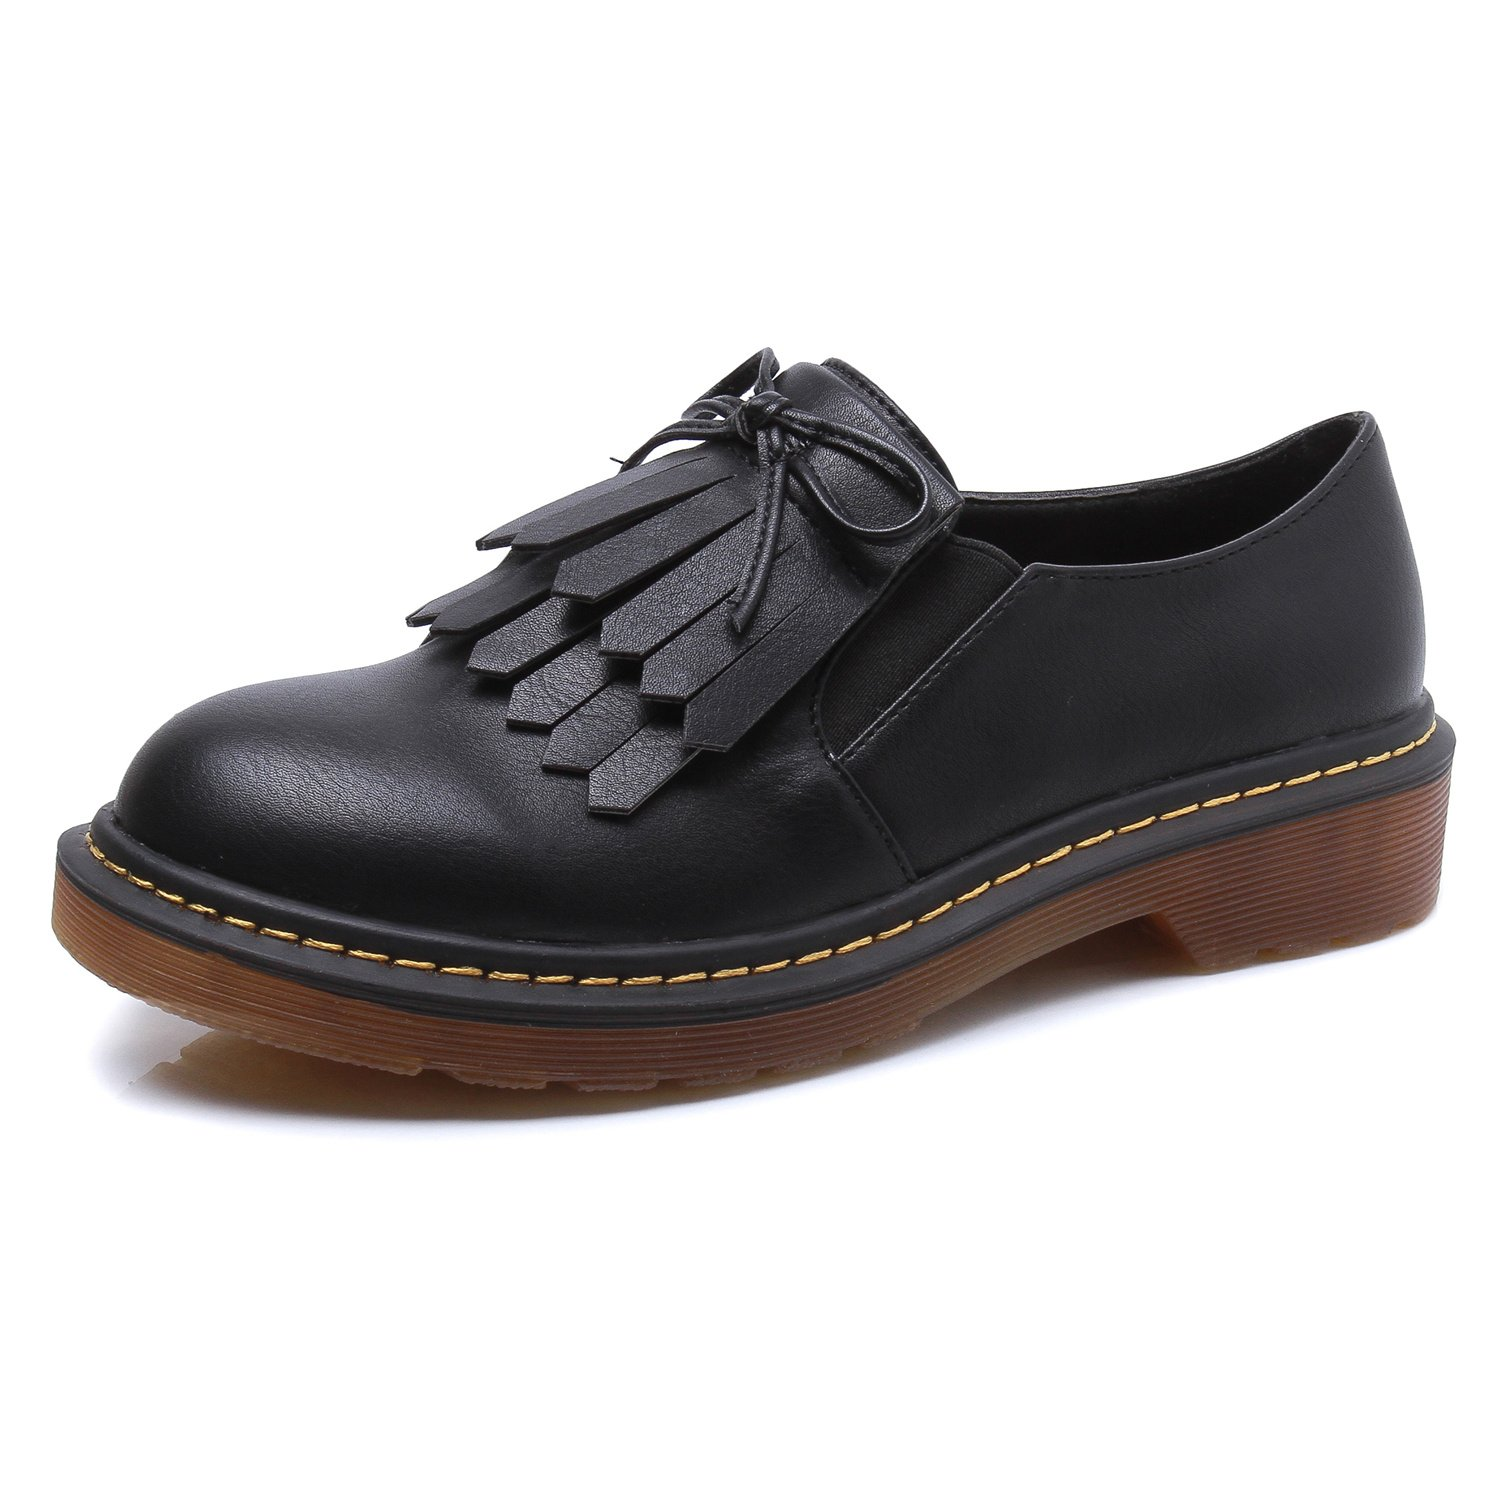 Smilun Lady¡¯s Brogues Classic Lace-Up Flats Shoes For Autumn Winter Spring Slip On Black Size 10 B(M) US